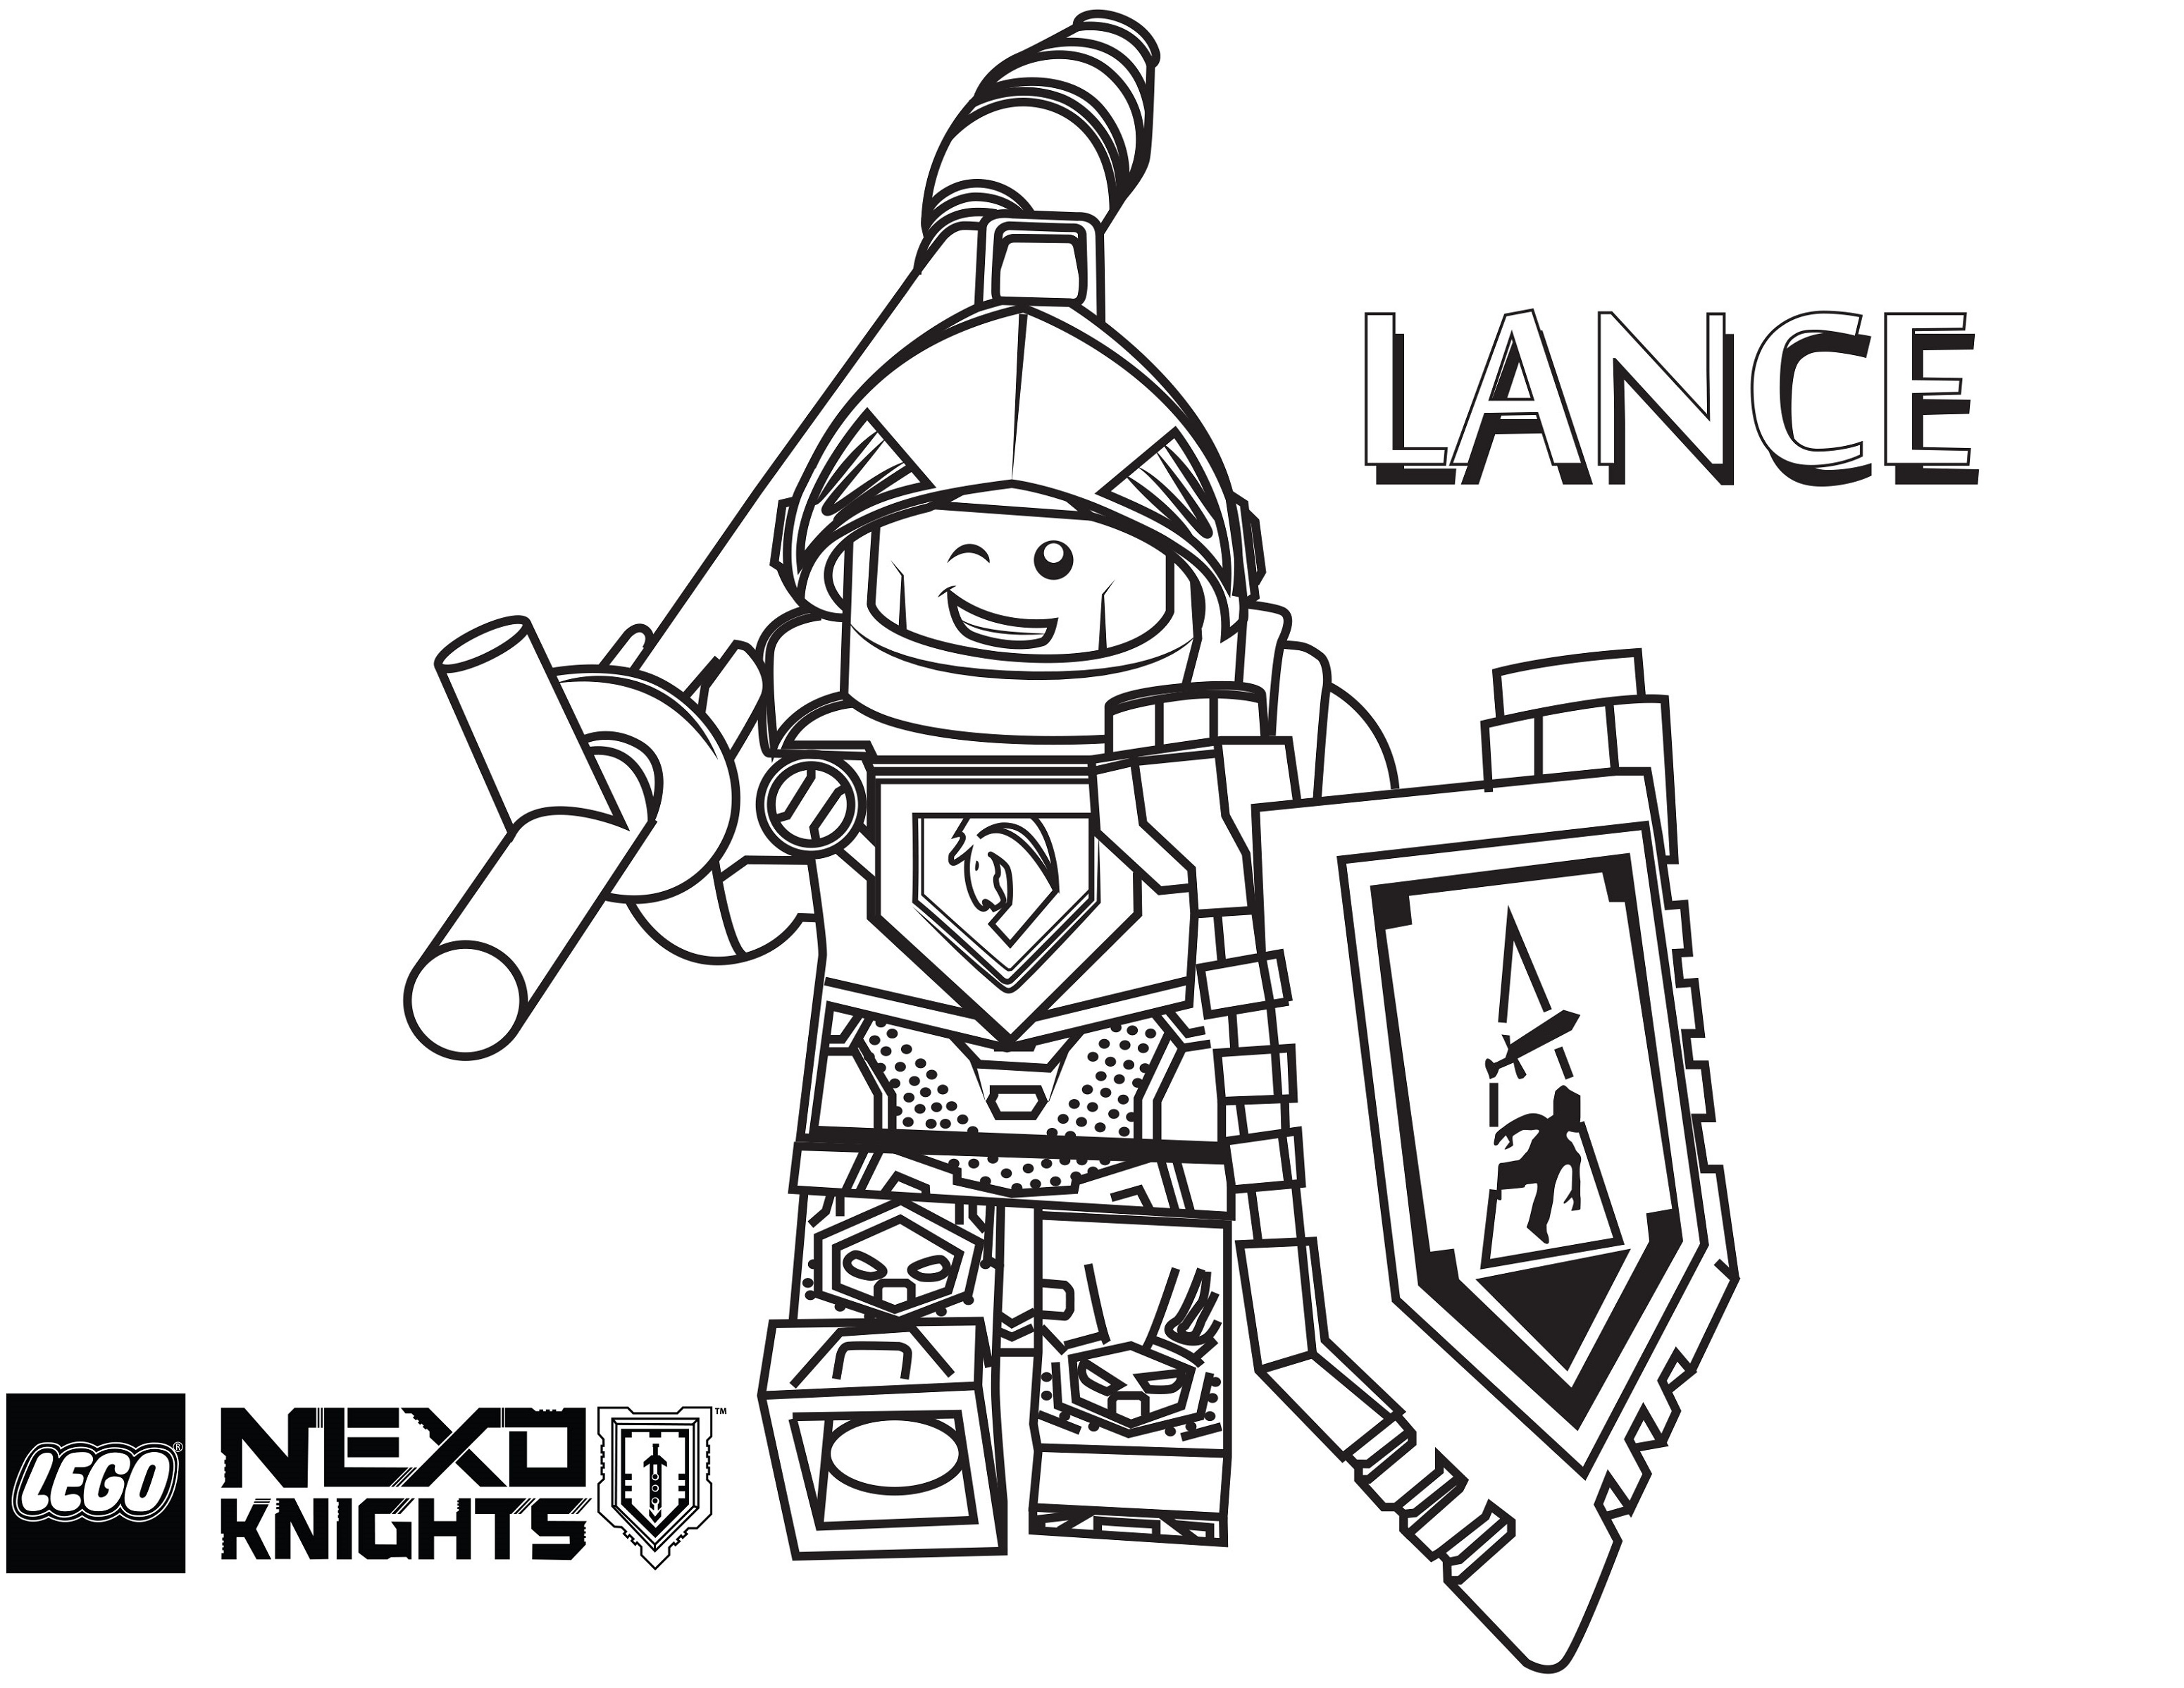 Lego Nexo Knights Coloring Pages Lance